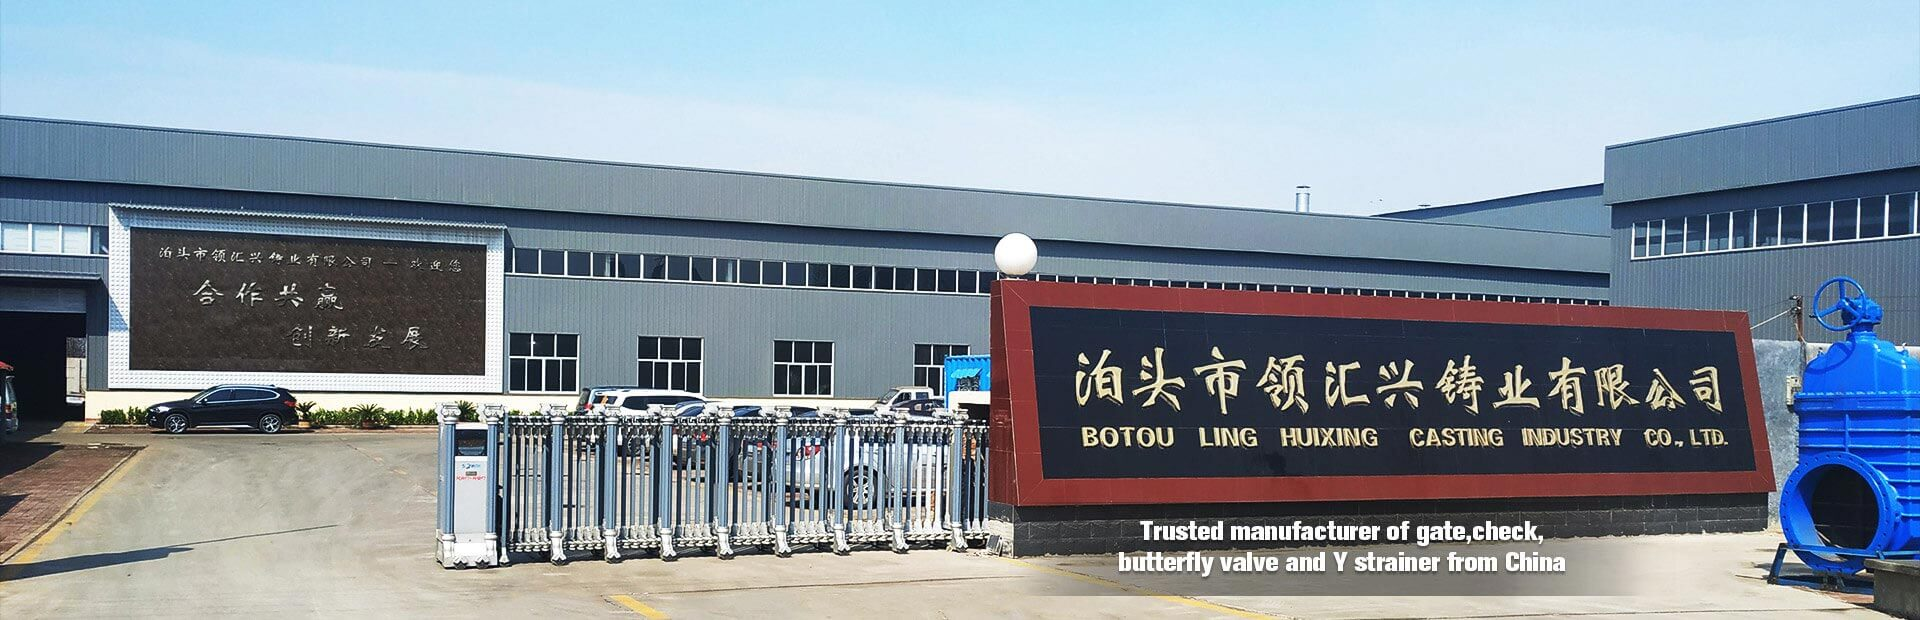 Trusted manufacturer of gate,check,butterfly valve and Y strainer from China.